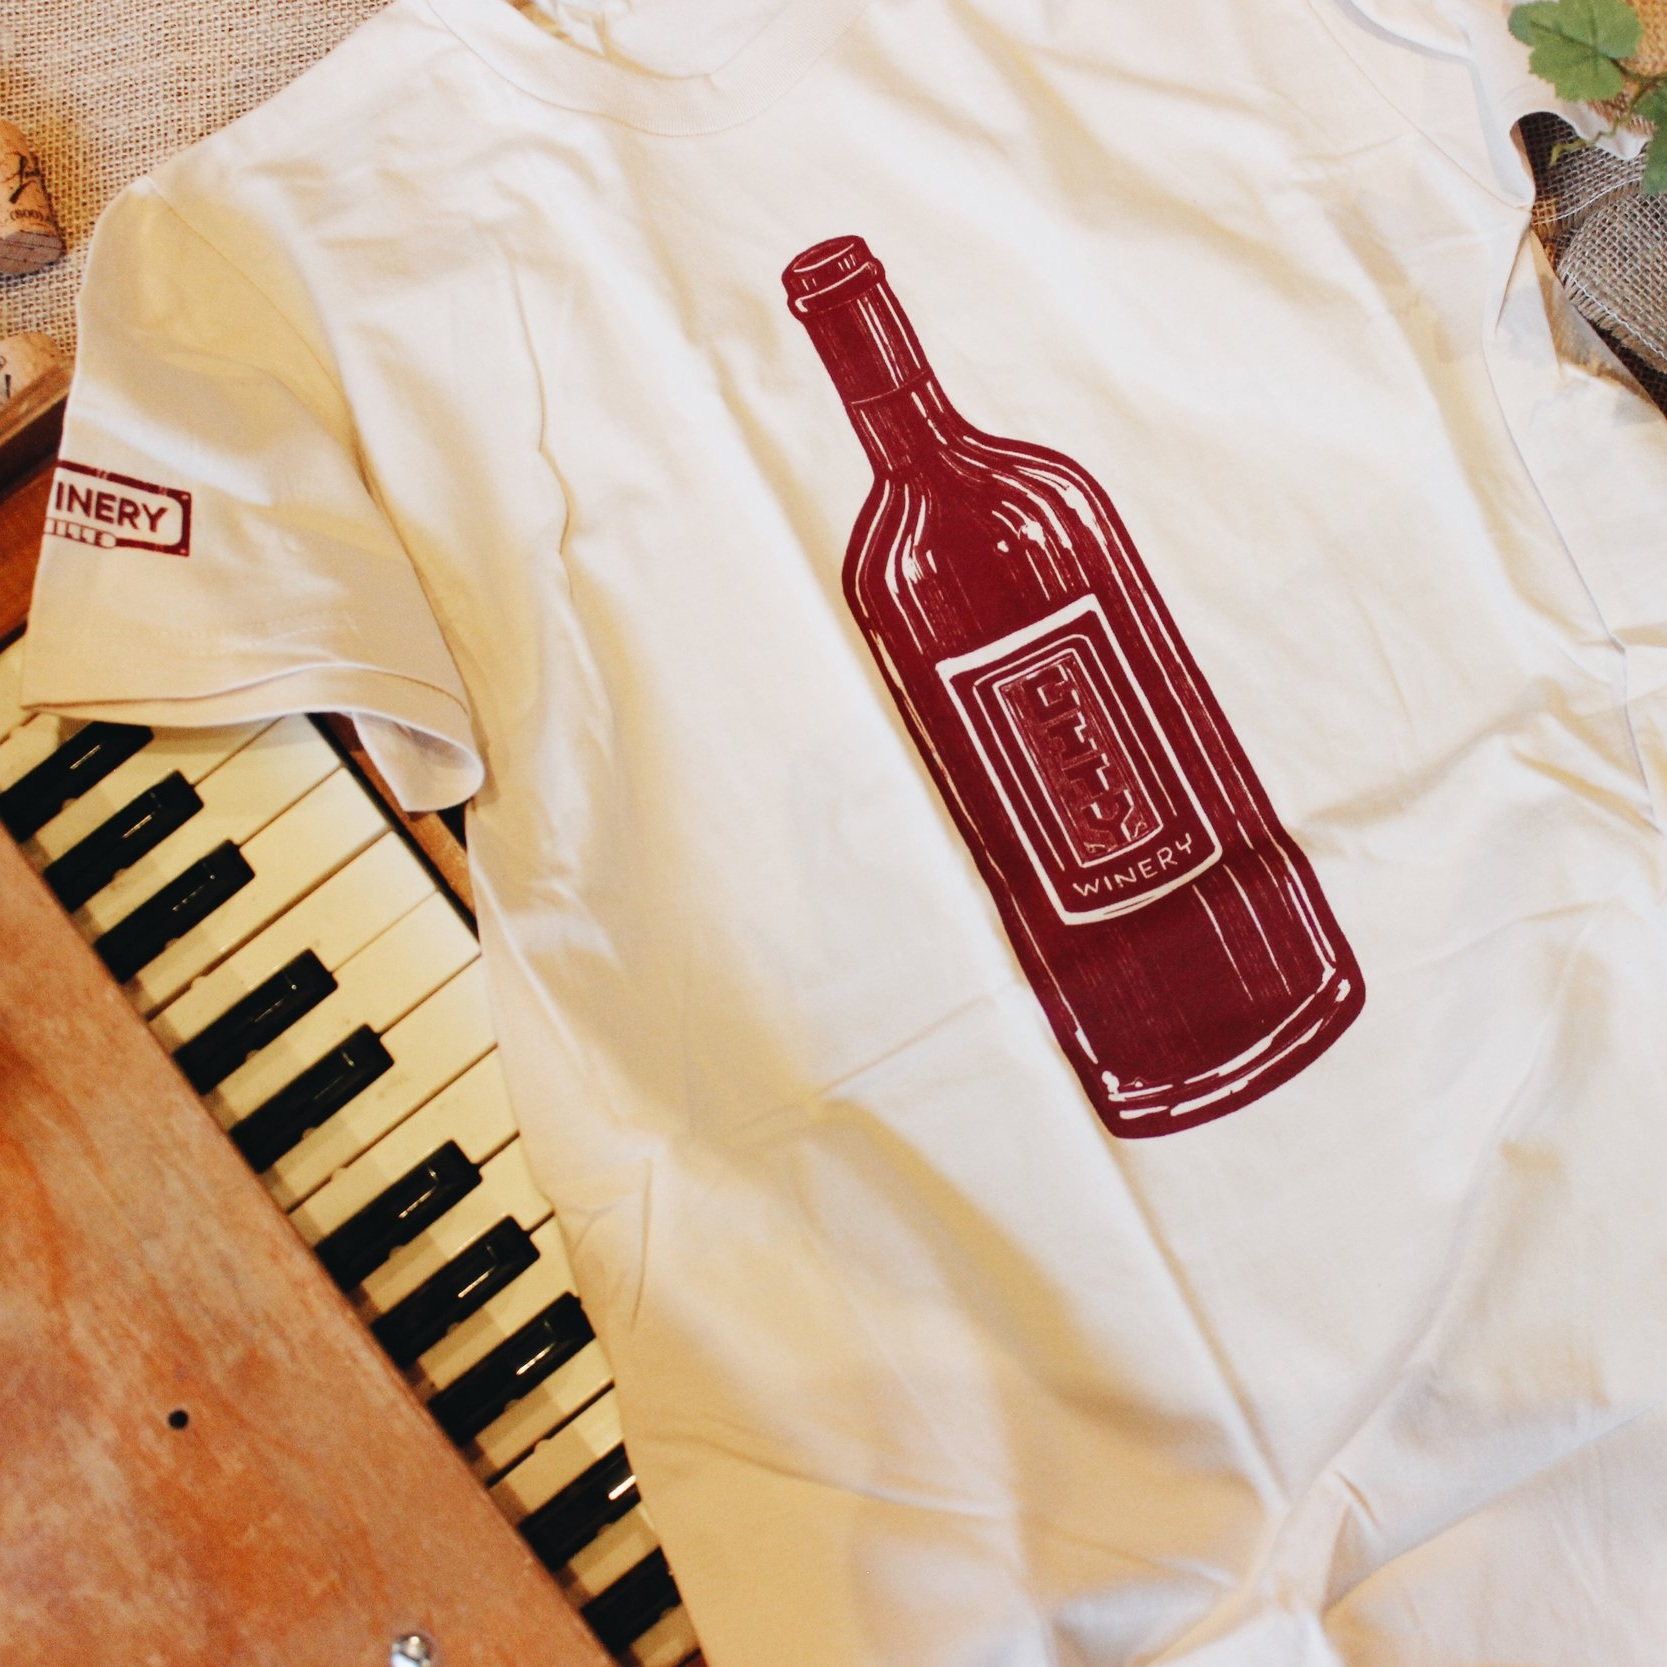 Isle of Printing Shirt - Sand - Our talented Pie Town neighbors at Isle of Printing and Bryce McCloud created this custom bottle imagery for City Winery Nashville's location when we launched in October of 2015. Now, the imagery can be seen throughout our lobby and lounge spaces, as well as on this stunning sand-colored t-shirt. Fits true to adult sizing.